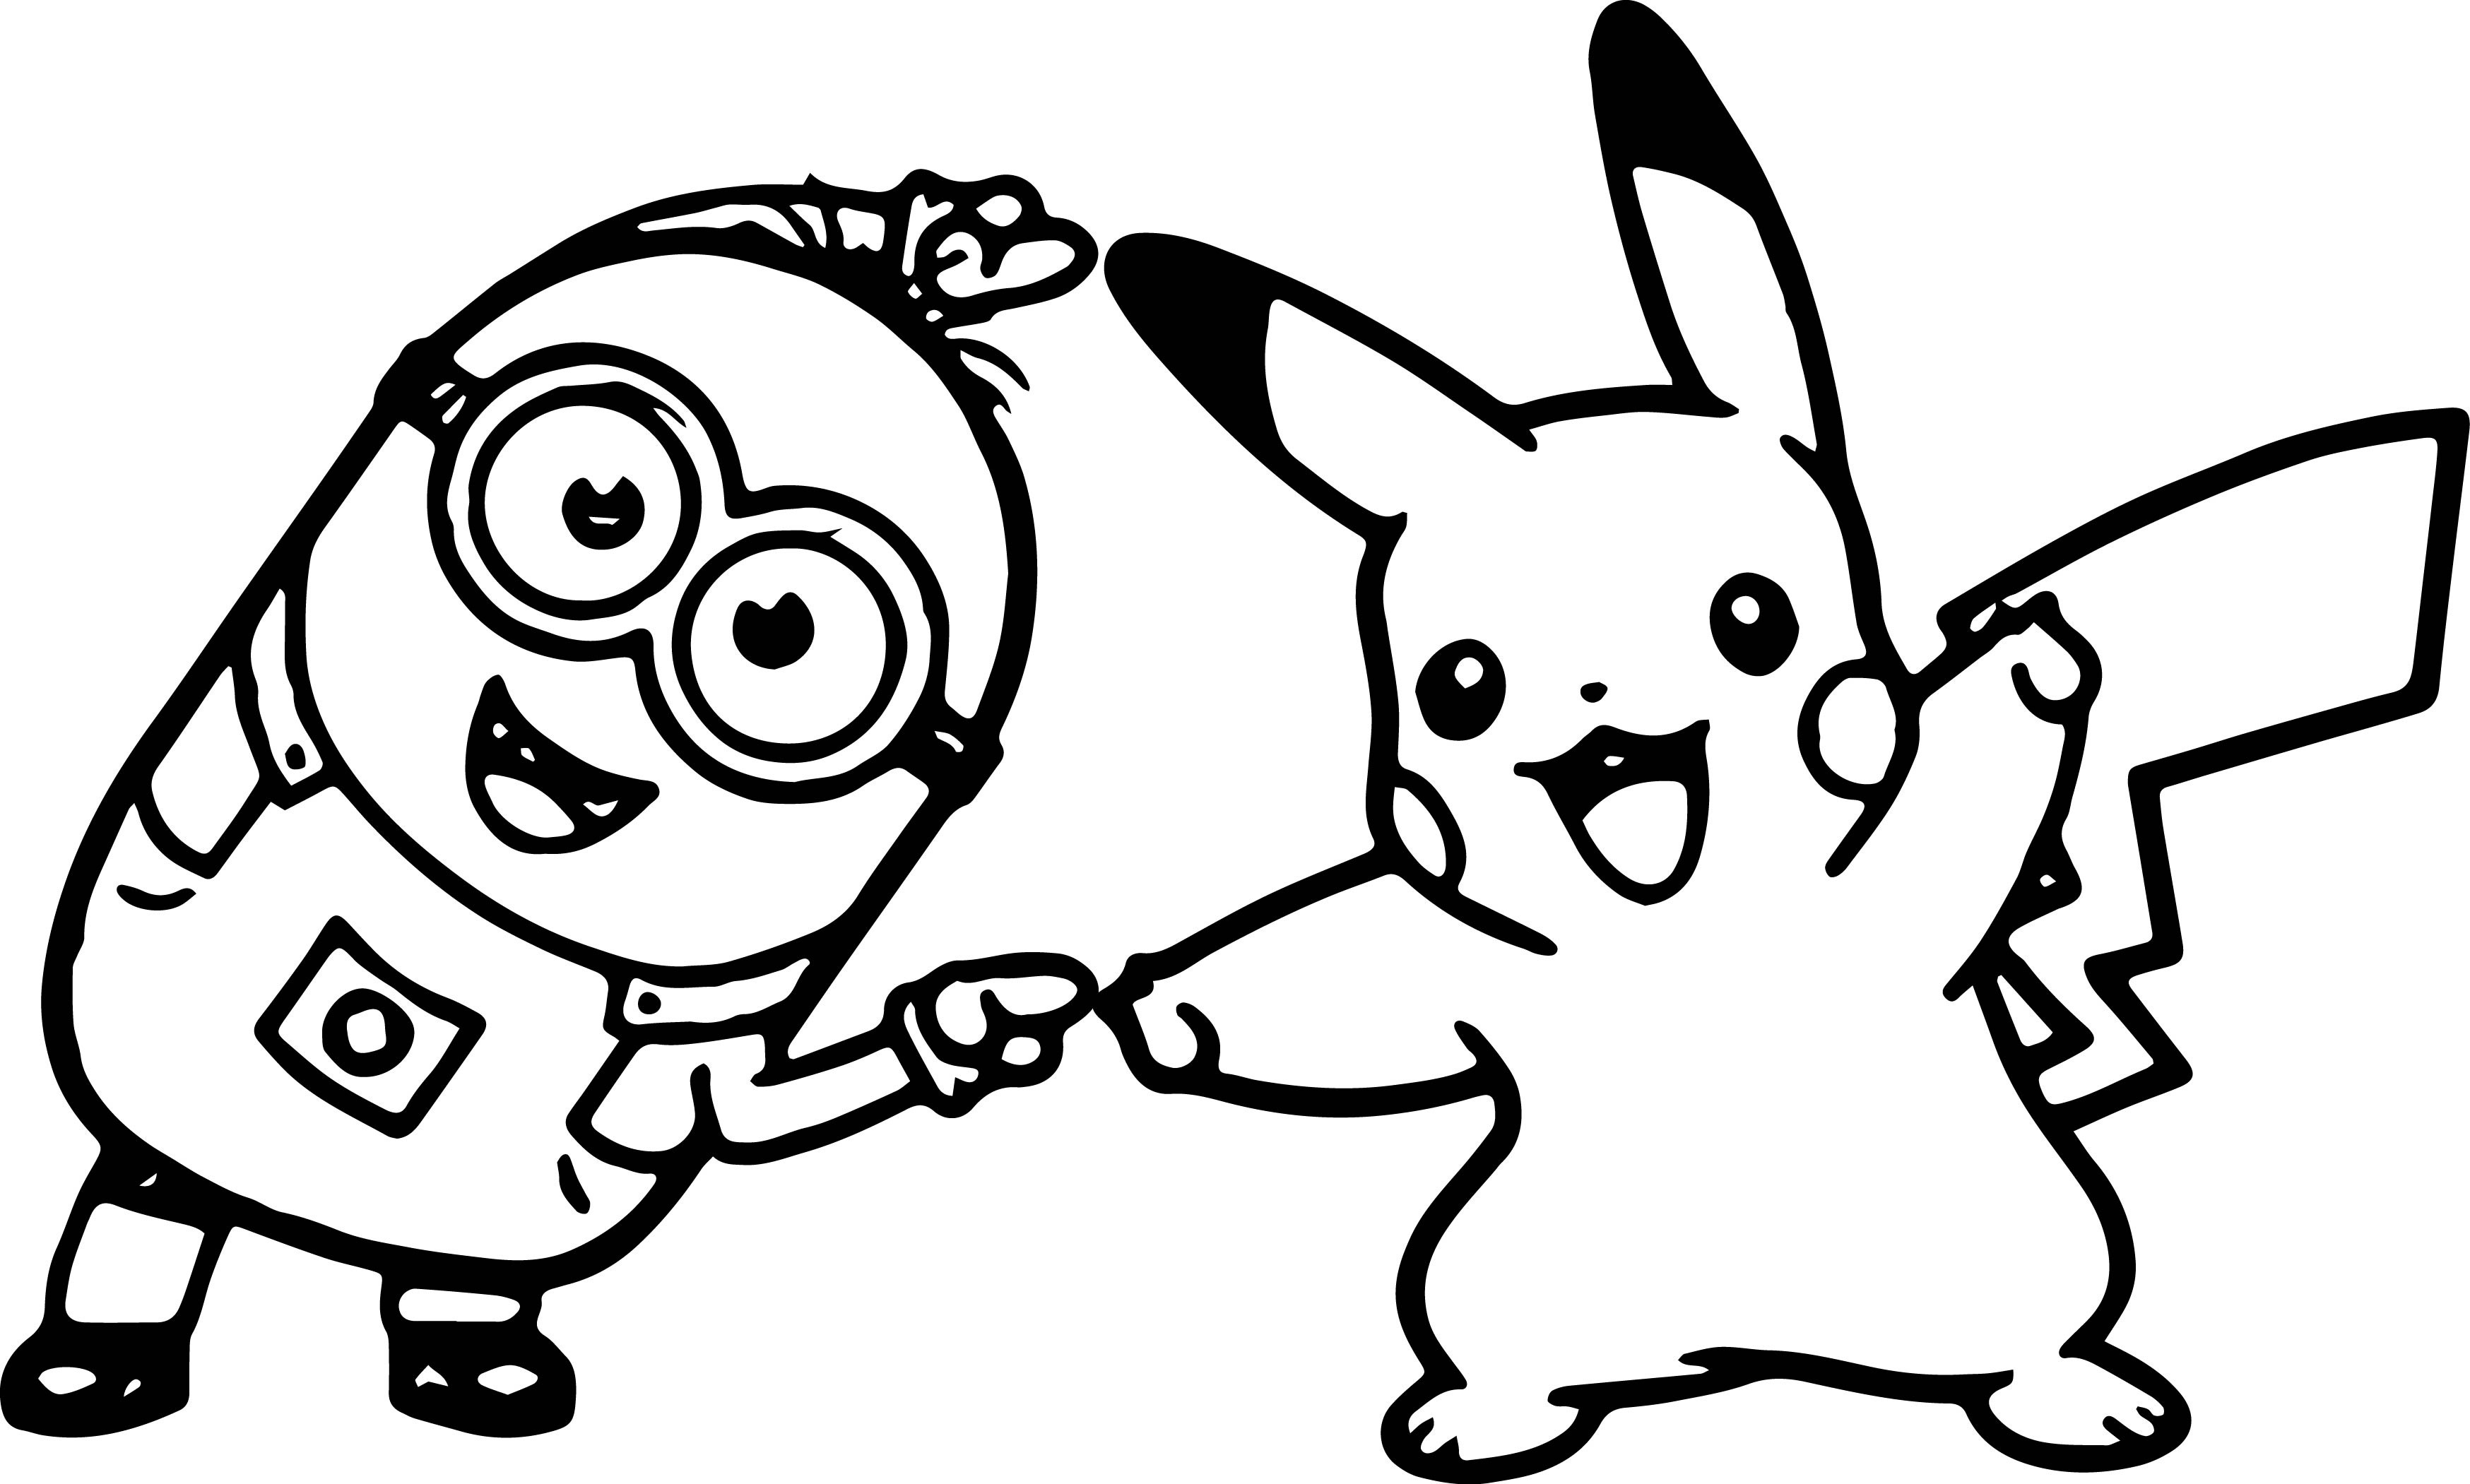 minion golf coloring page golf coloring pages best coloring pages for kids coloring minion page golf